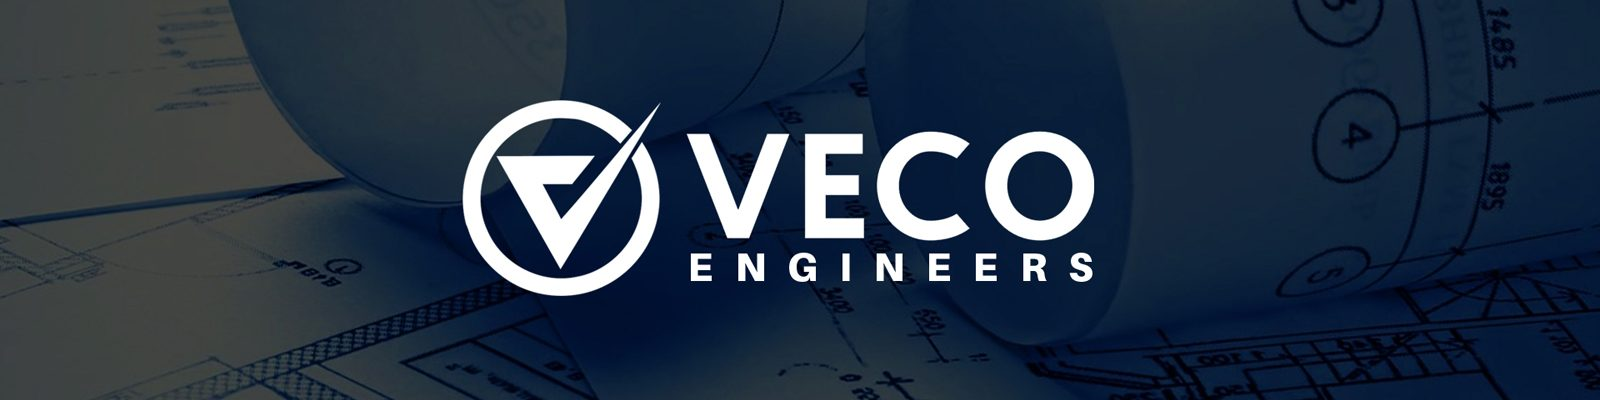 Veco Engineers